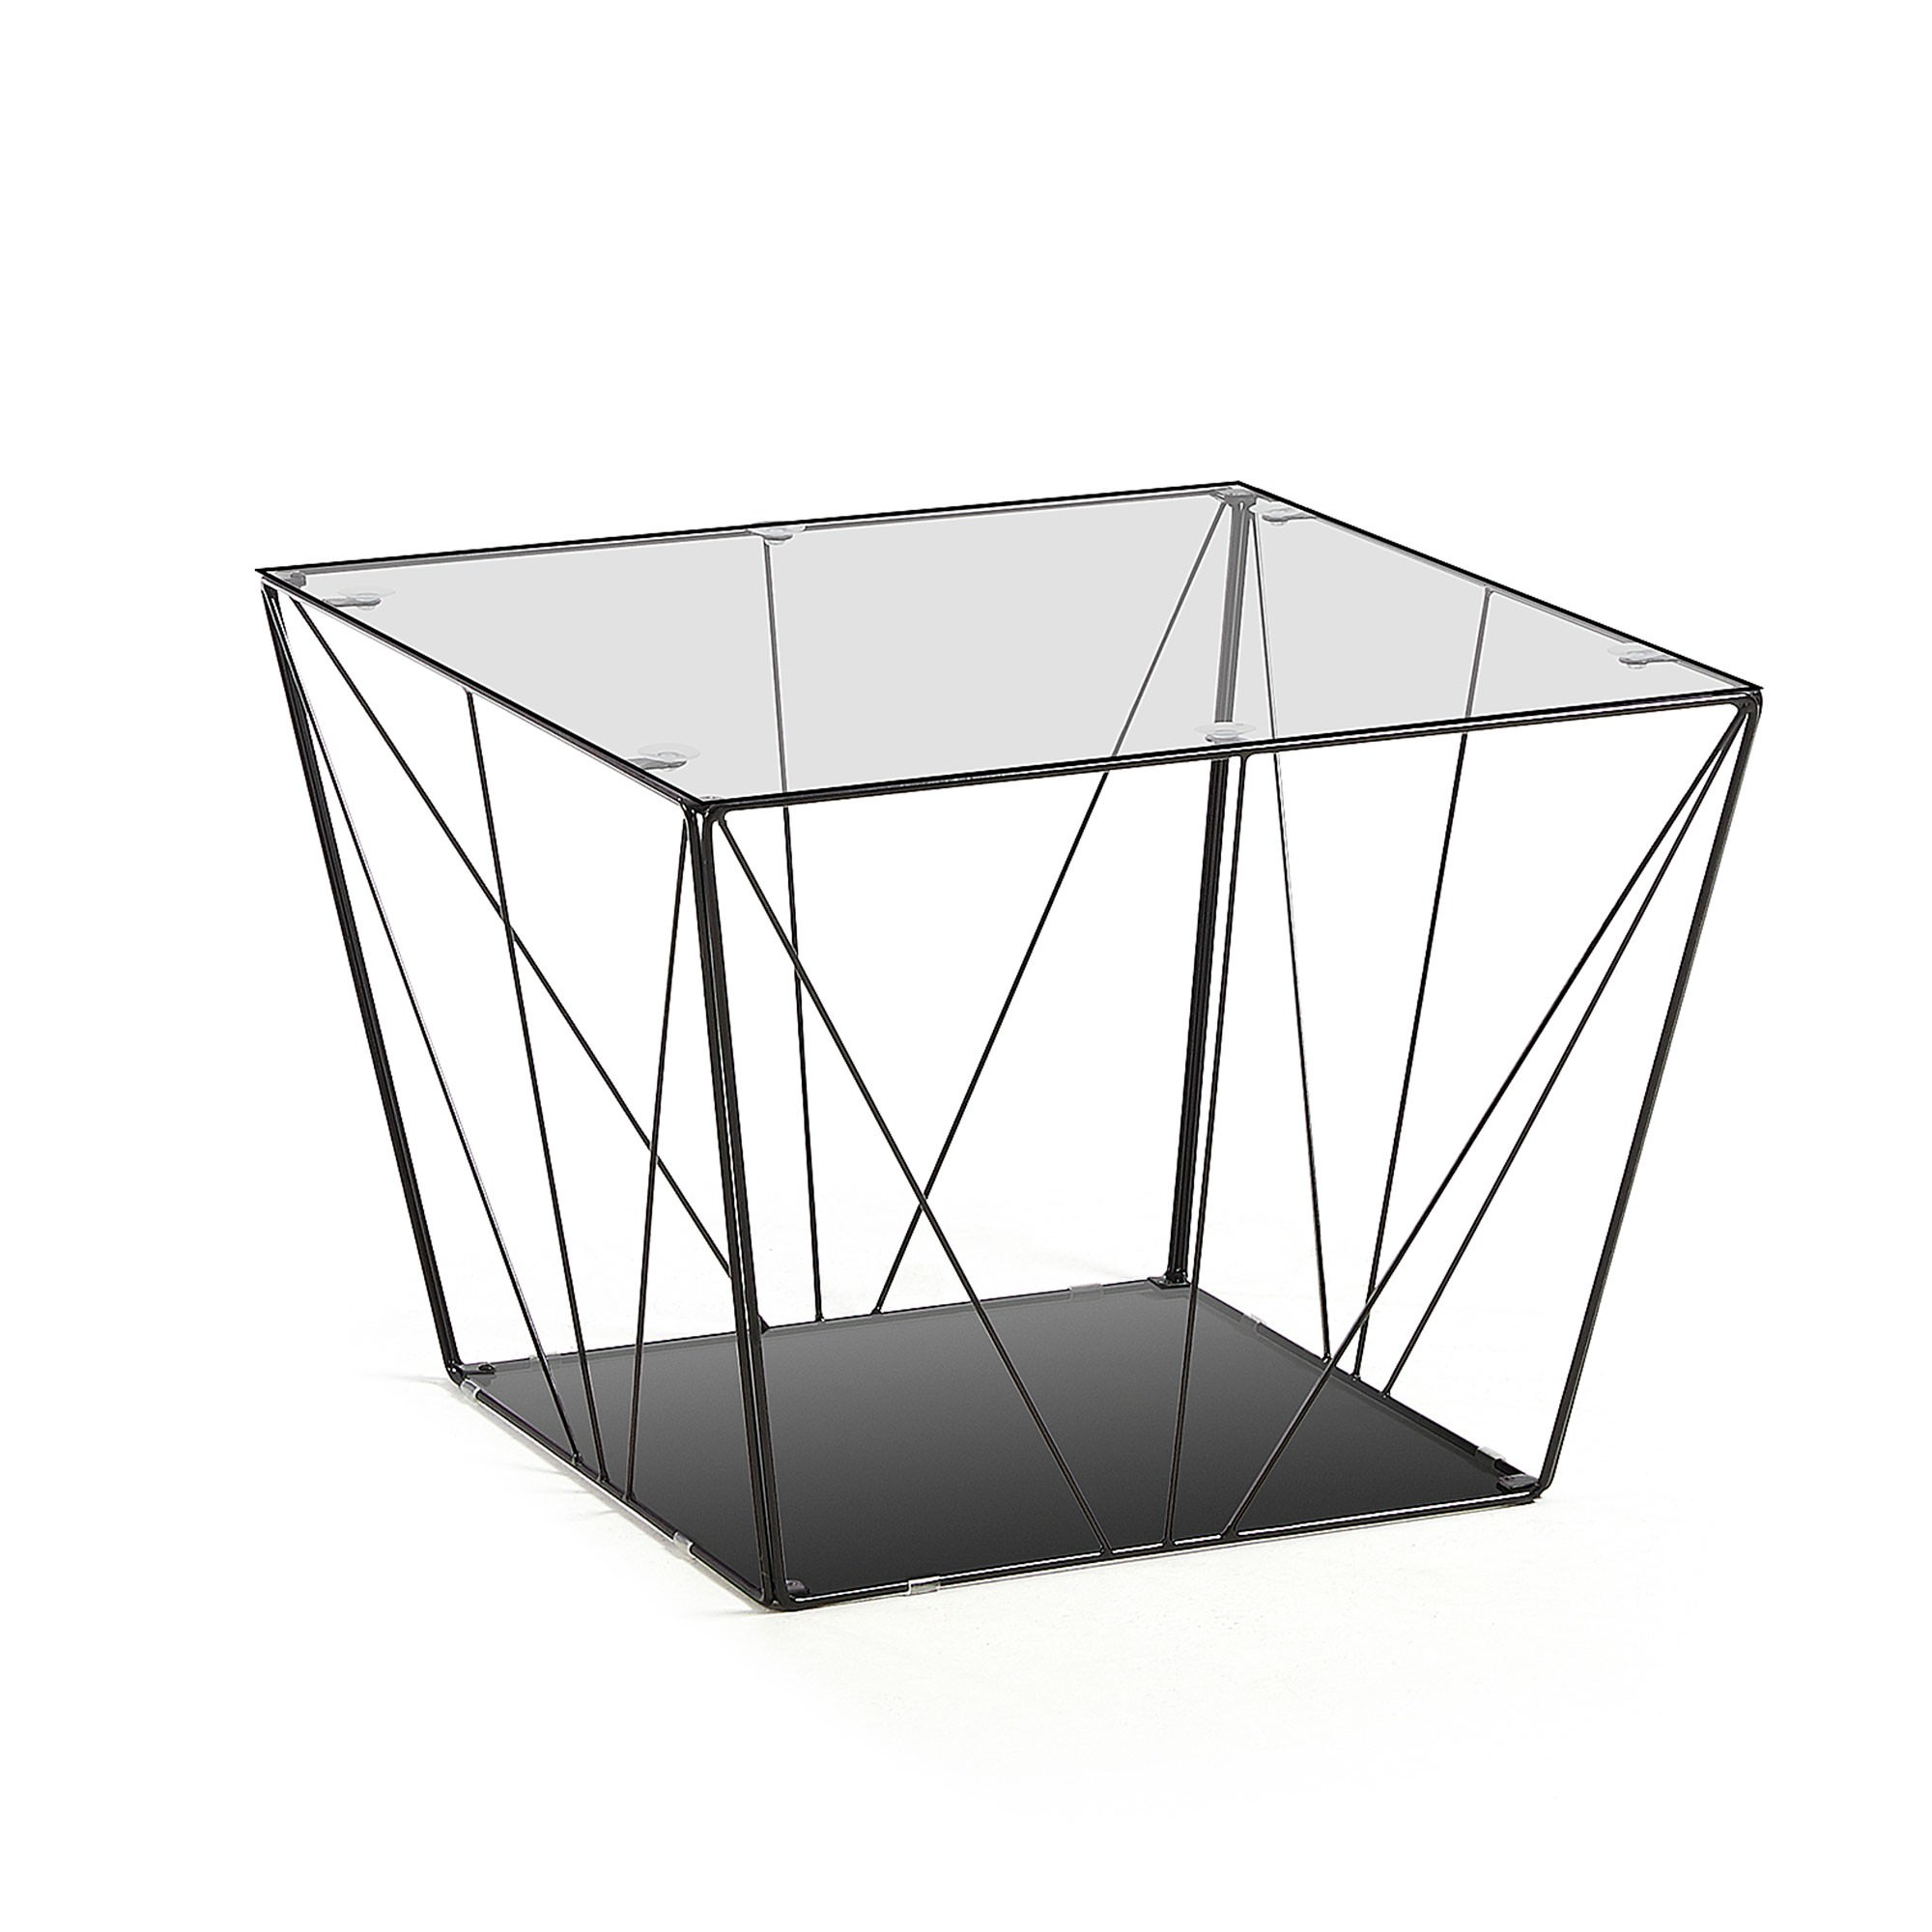 Azur Glass Topped Steel Square Coffee Table, 60cm